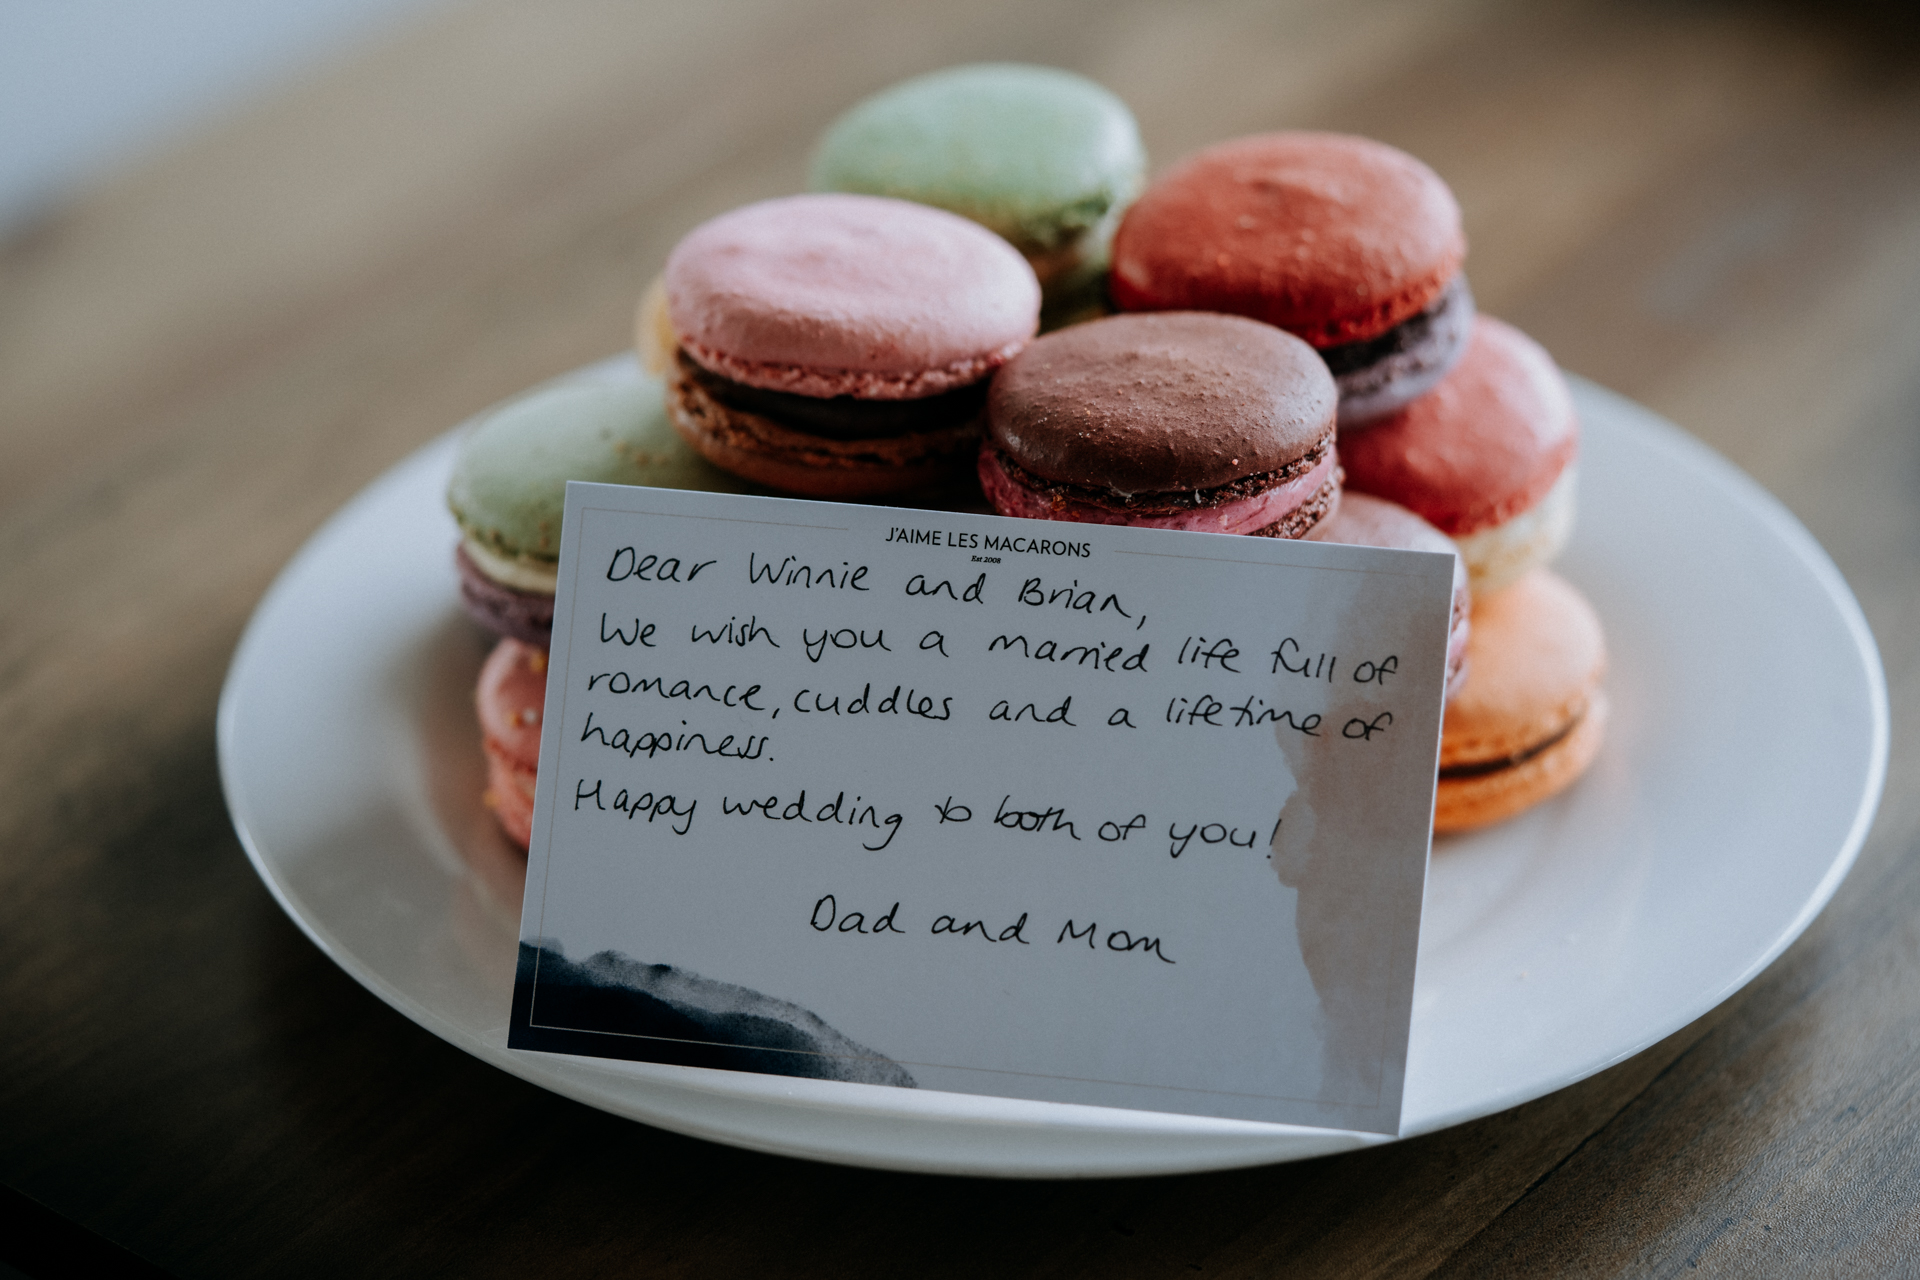 Christchurch, NZ Elopement Detail Photo | Even though their family was not in attendance, they still sent along a lovely gift of colorful macarons